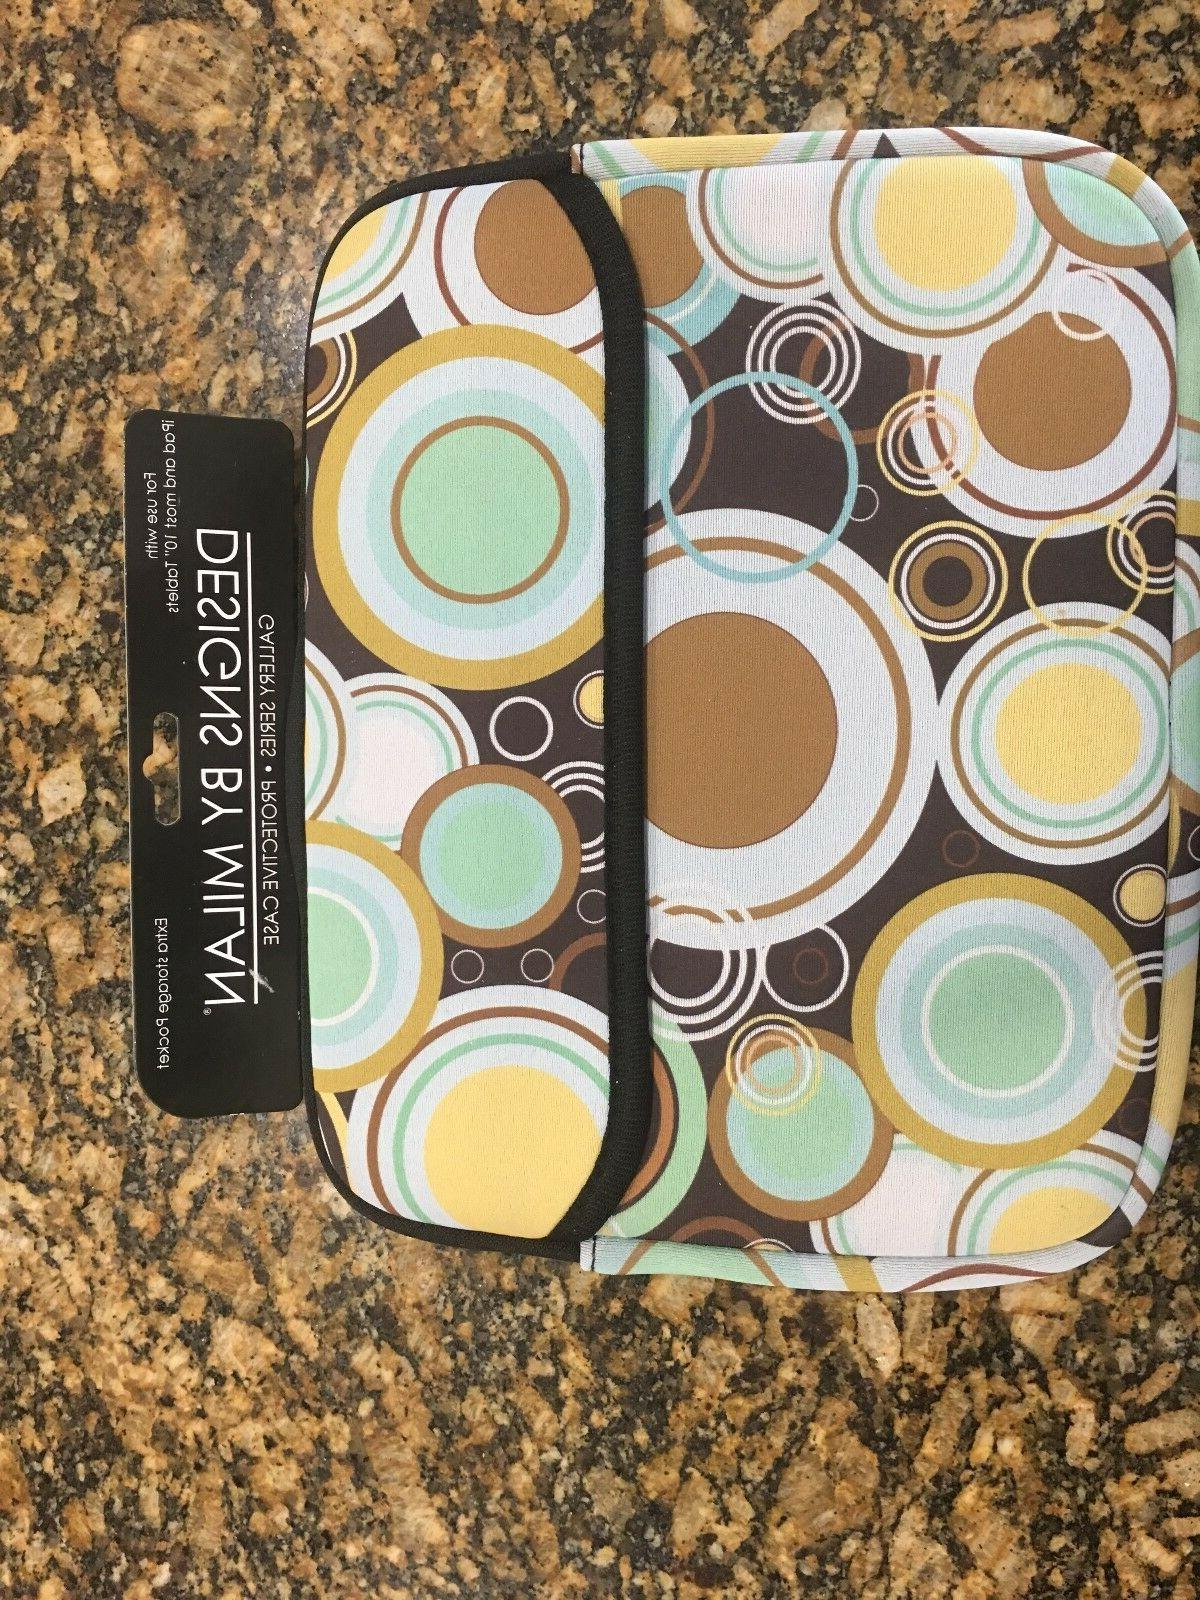 10 brown circle pattern case sleeve pouch